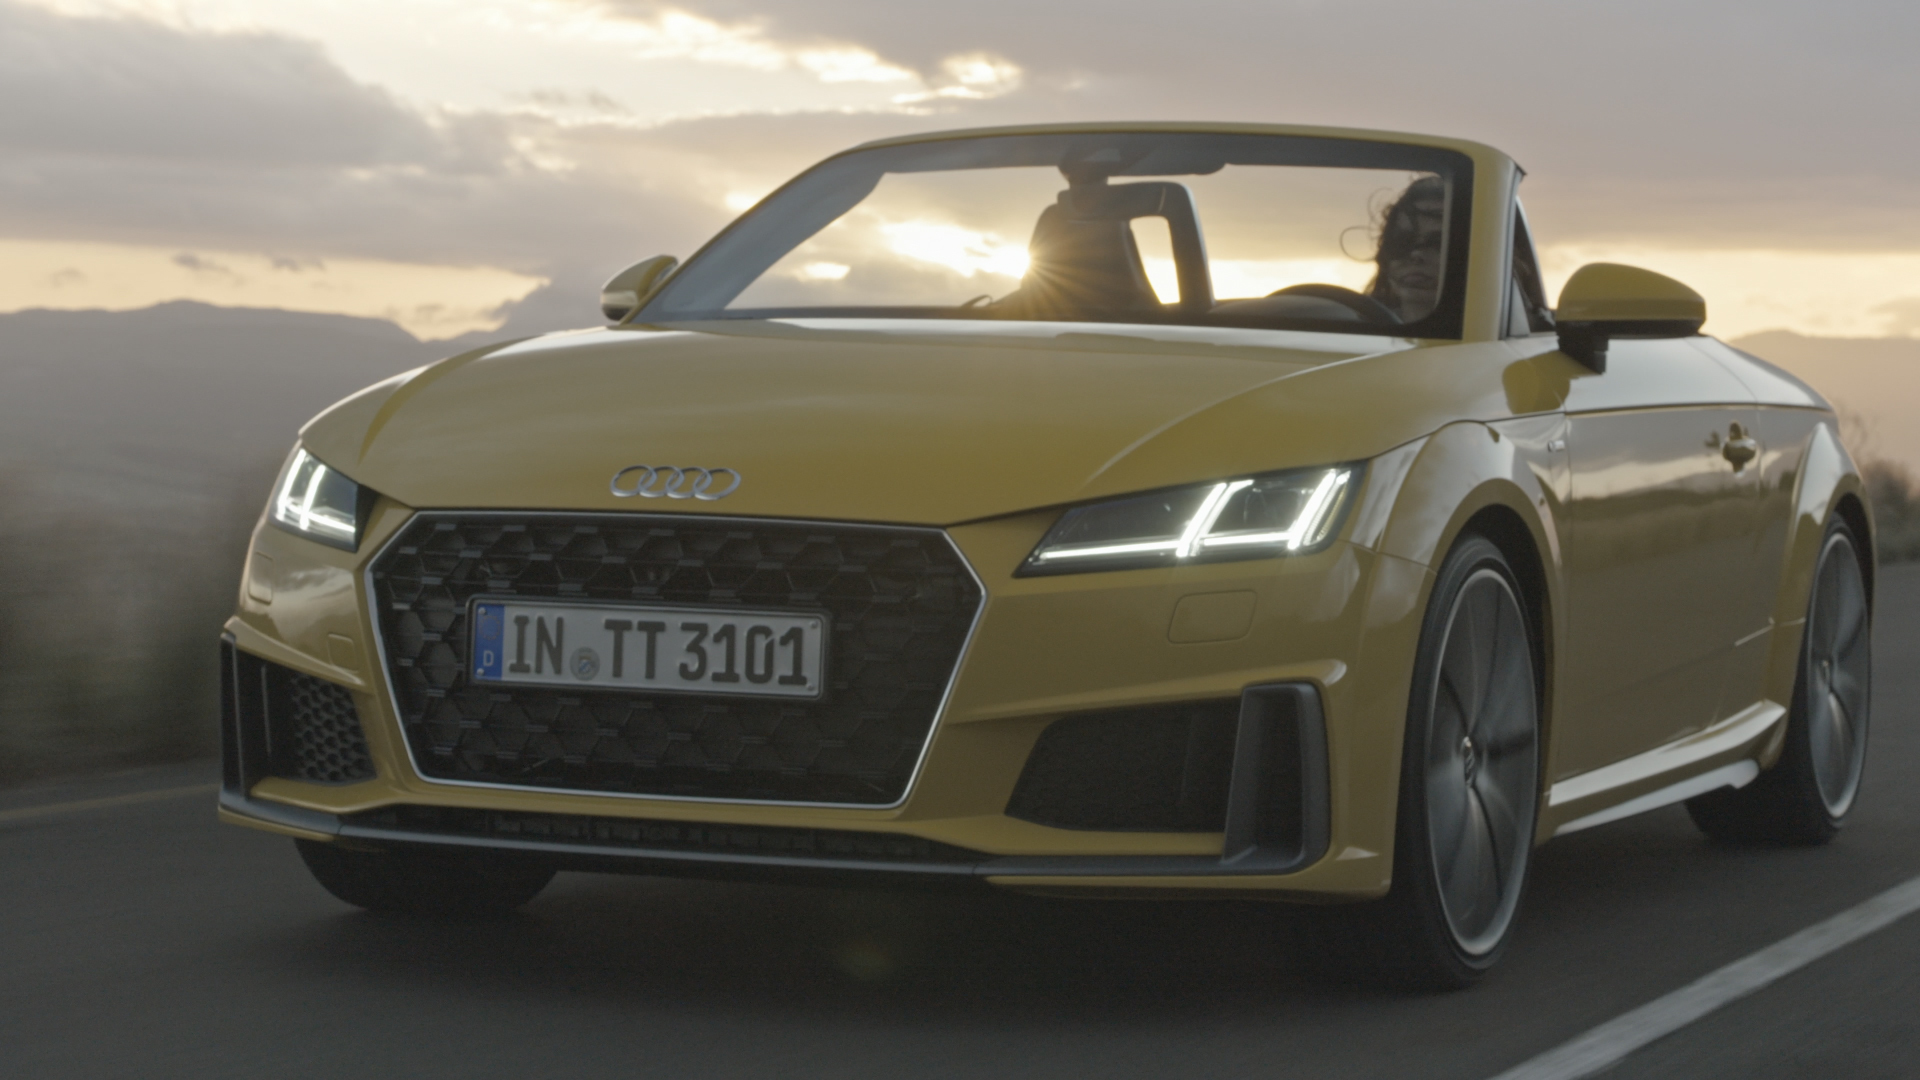 More masculine, more progressive and sportier – The new Audi TT Roadster